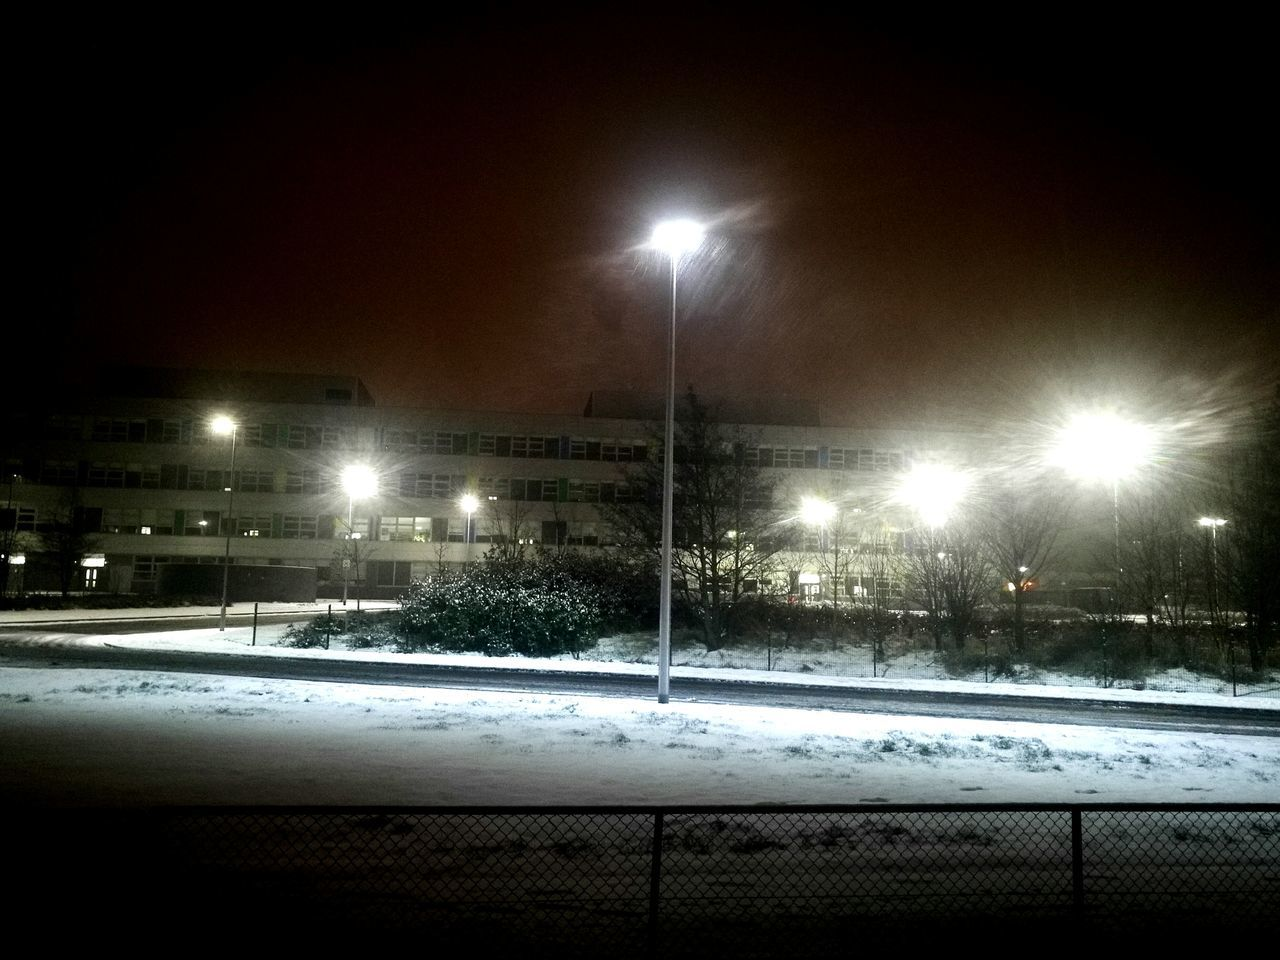 illuminated, night, snow, winter, cold temperature, street light, lighting equipment, weather, floodlight, no people, outdoors, building exterior, built structure, snowing, architecture, nature, sky, sport, ice rink